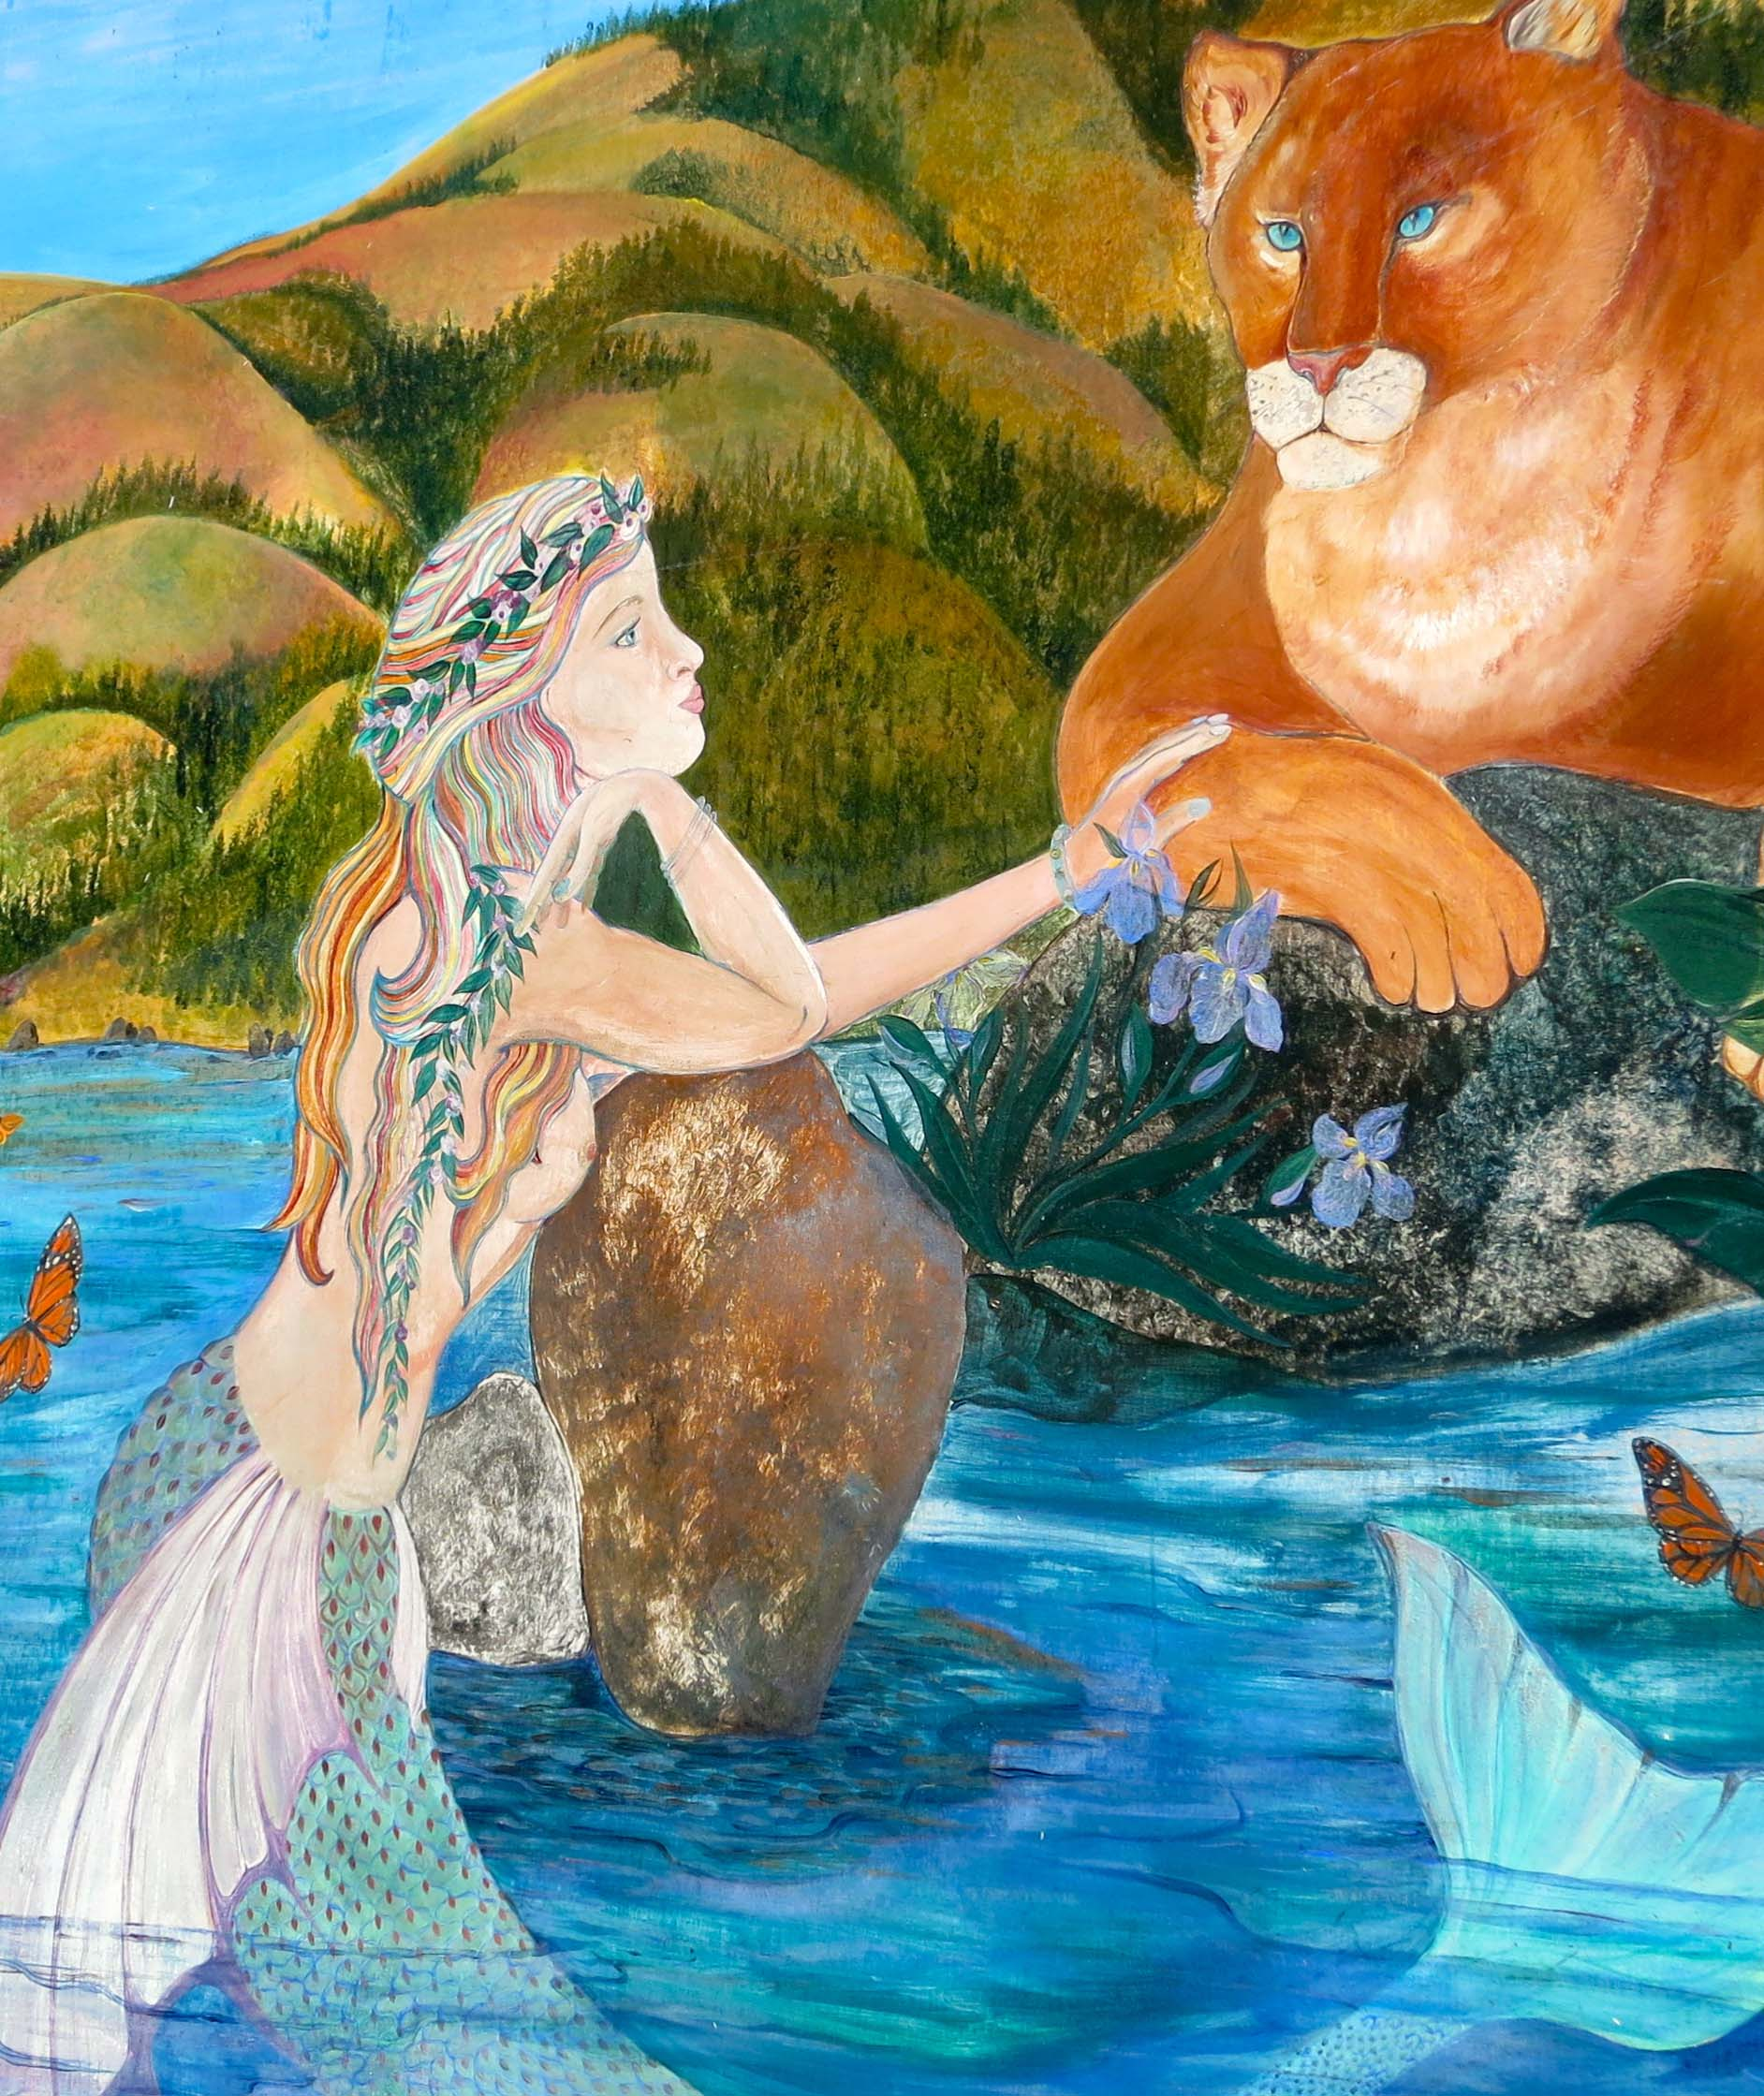 Mural of mountain lion and mermaid in Bolinas, California. Photo by Curtis Mekemson.